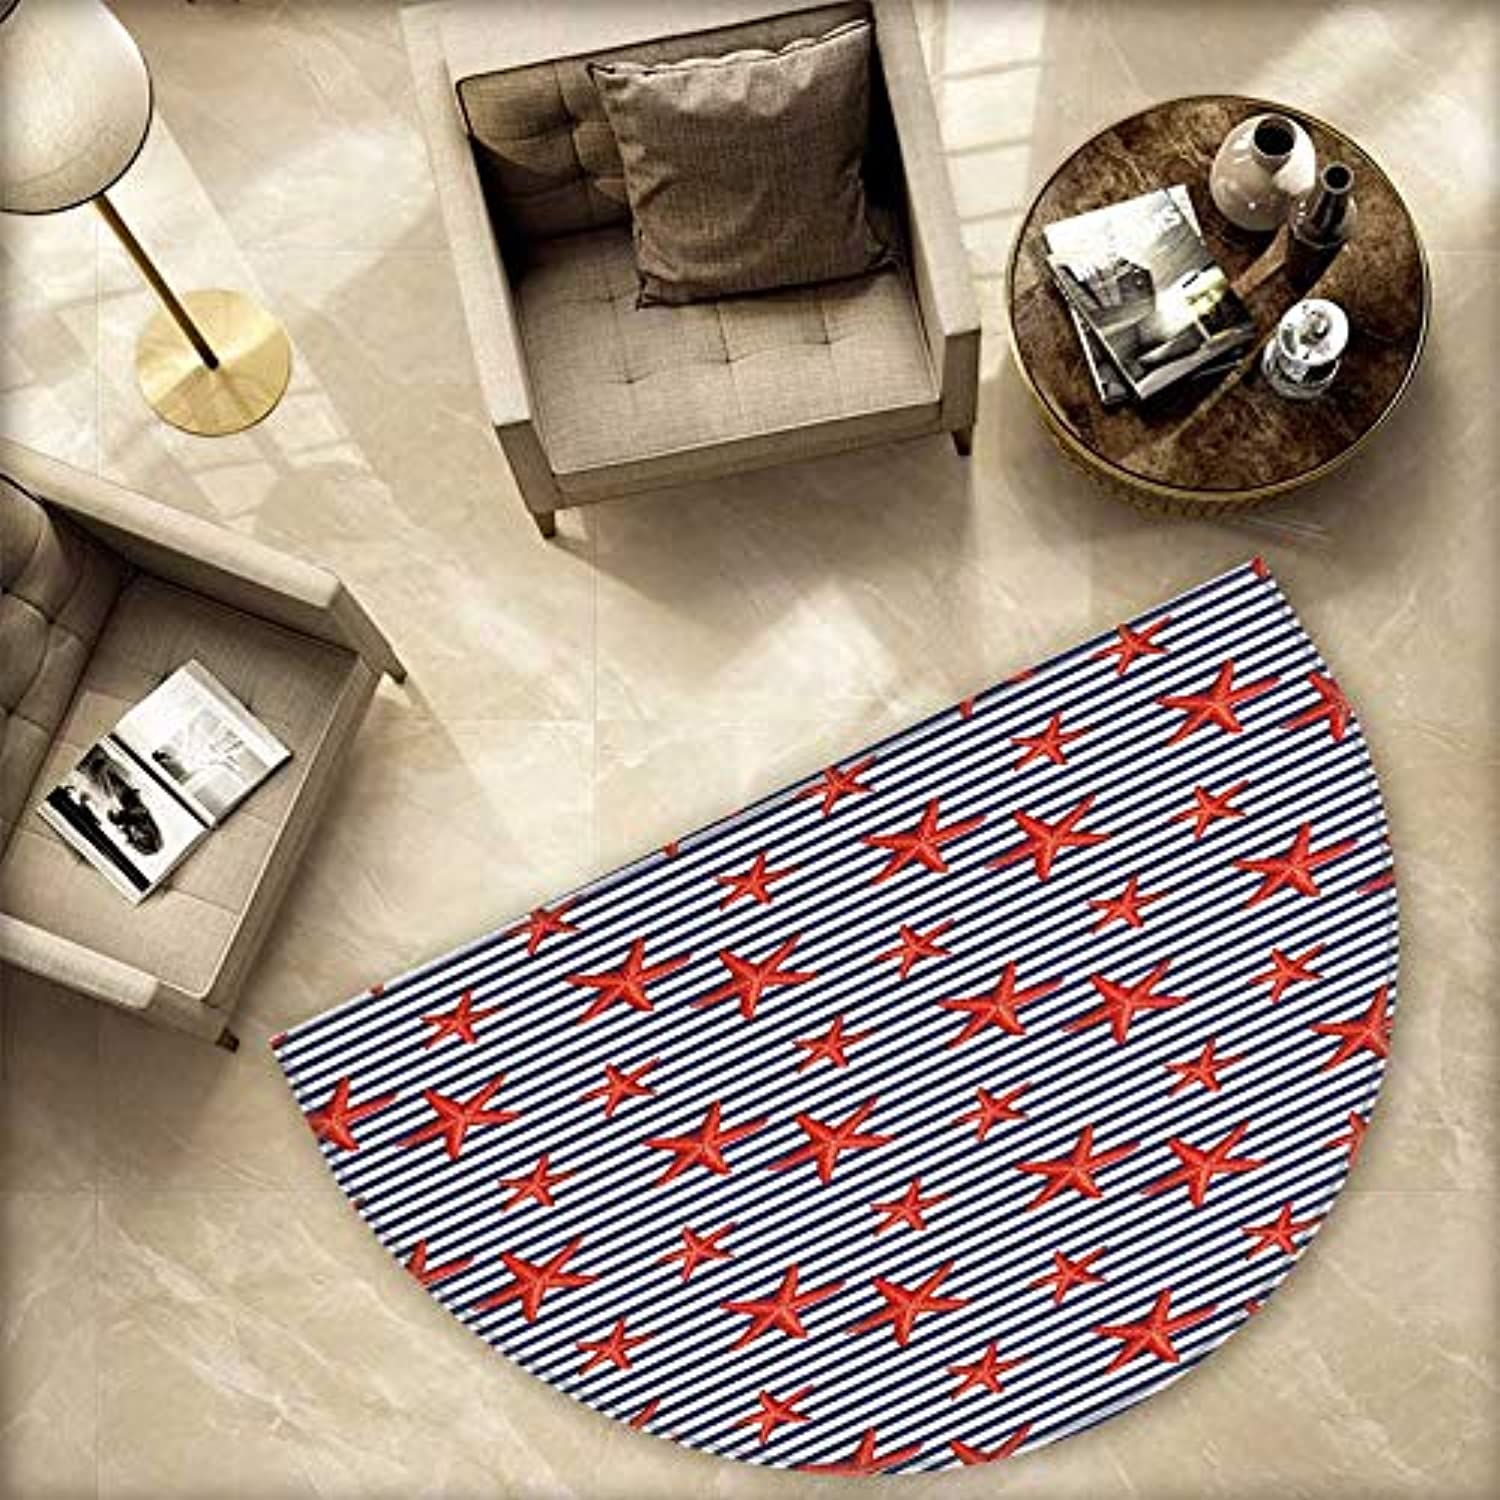 Starfish Semicircle Doormat Classical Striped Backdrop with Red colord Sea Stars Maritime Themed Pattern Halfmoon doormats H 78.7  xD 118.1  Navy White Red